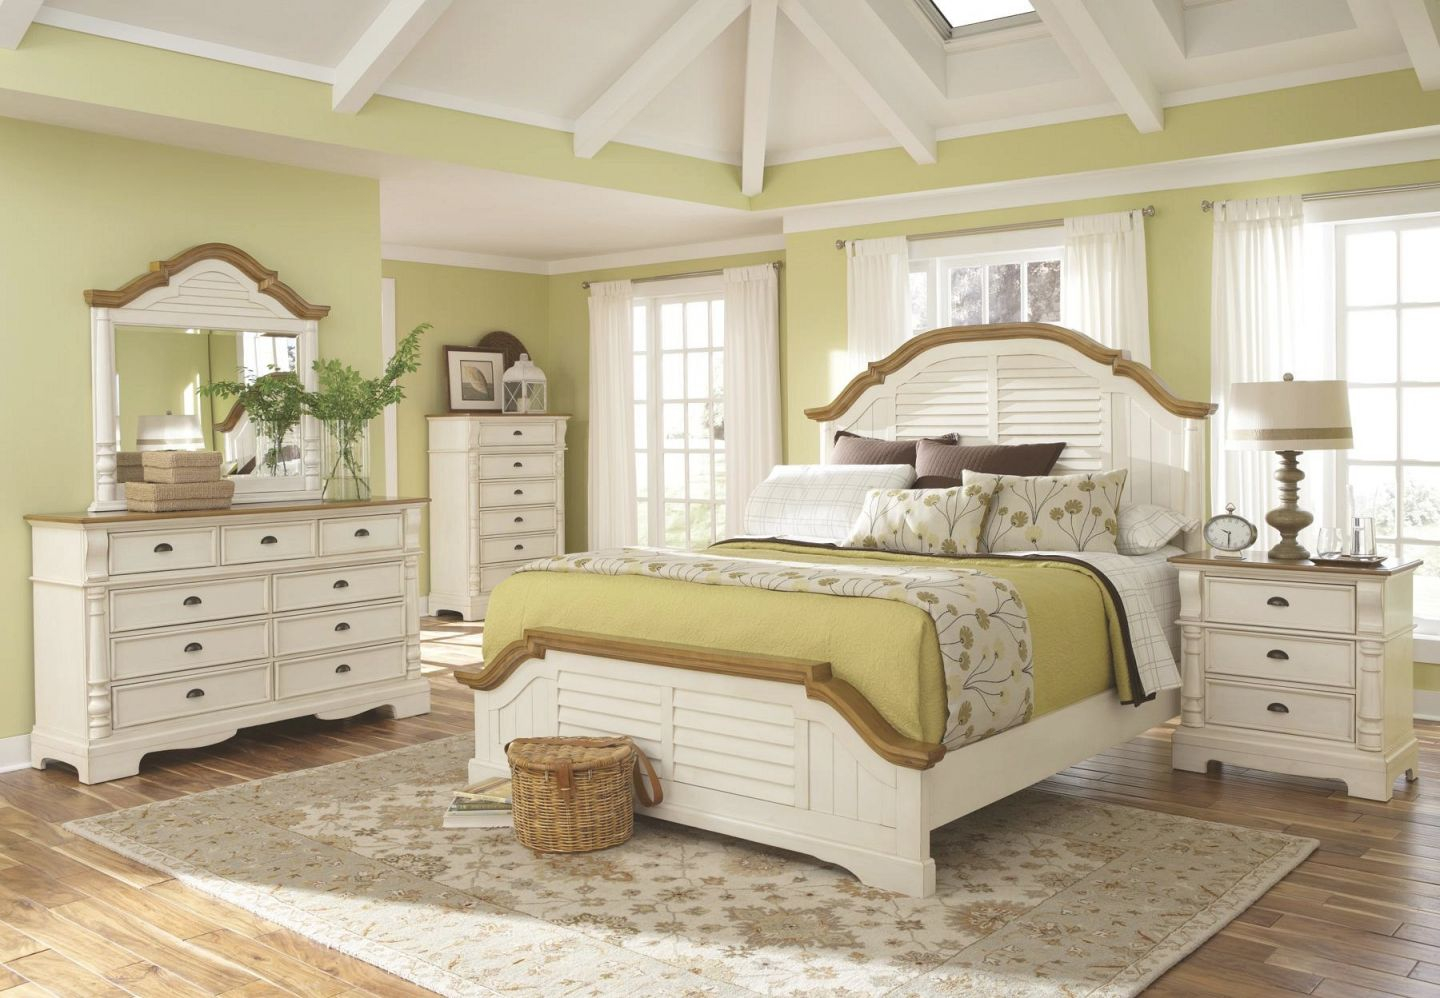 Einnehmend Bedroom Furniture Sets White Wood Small Latest for Inspirational Teen Bedroom Furniture Sets